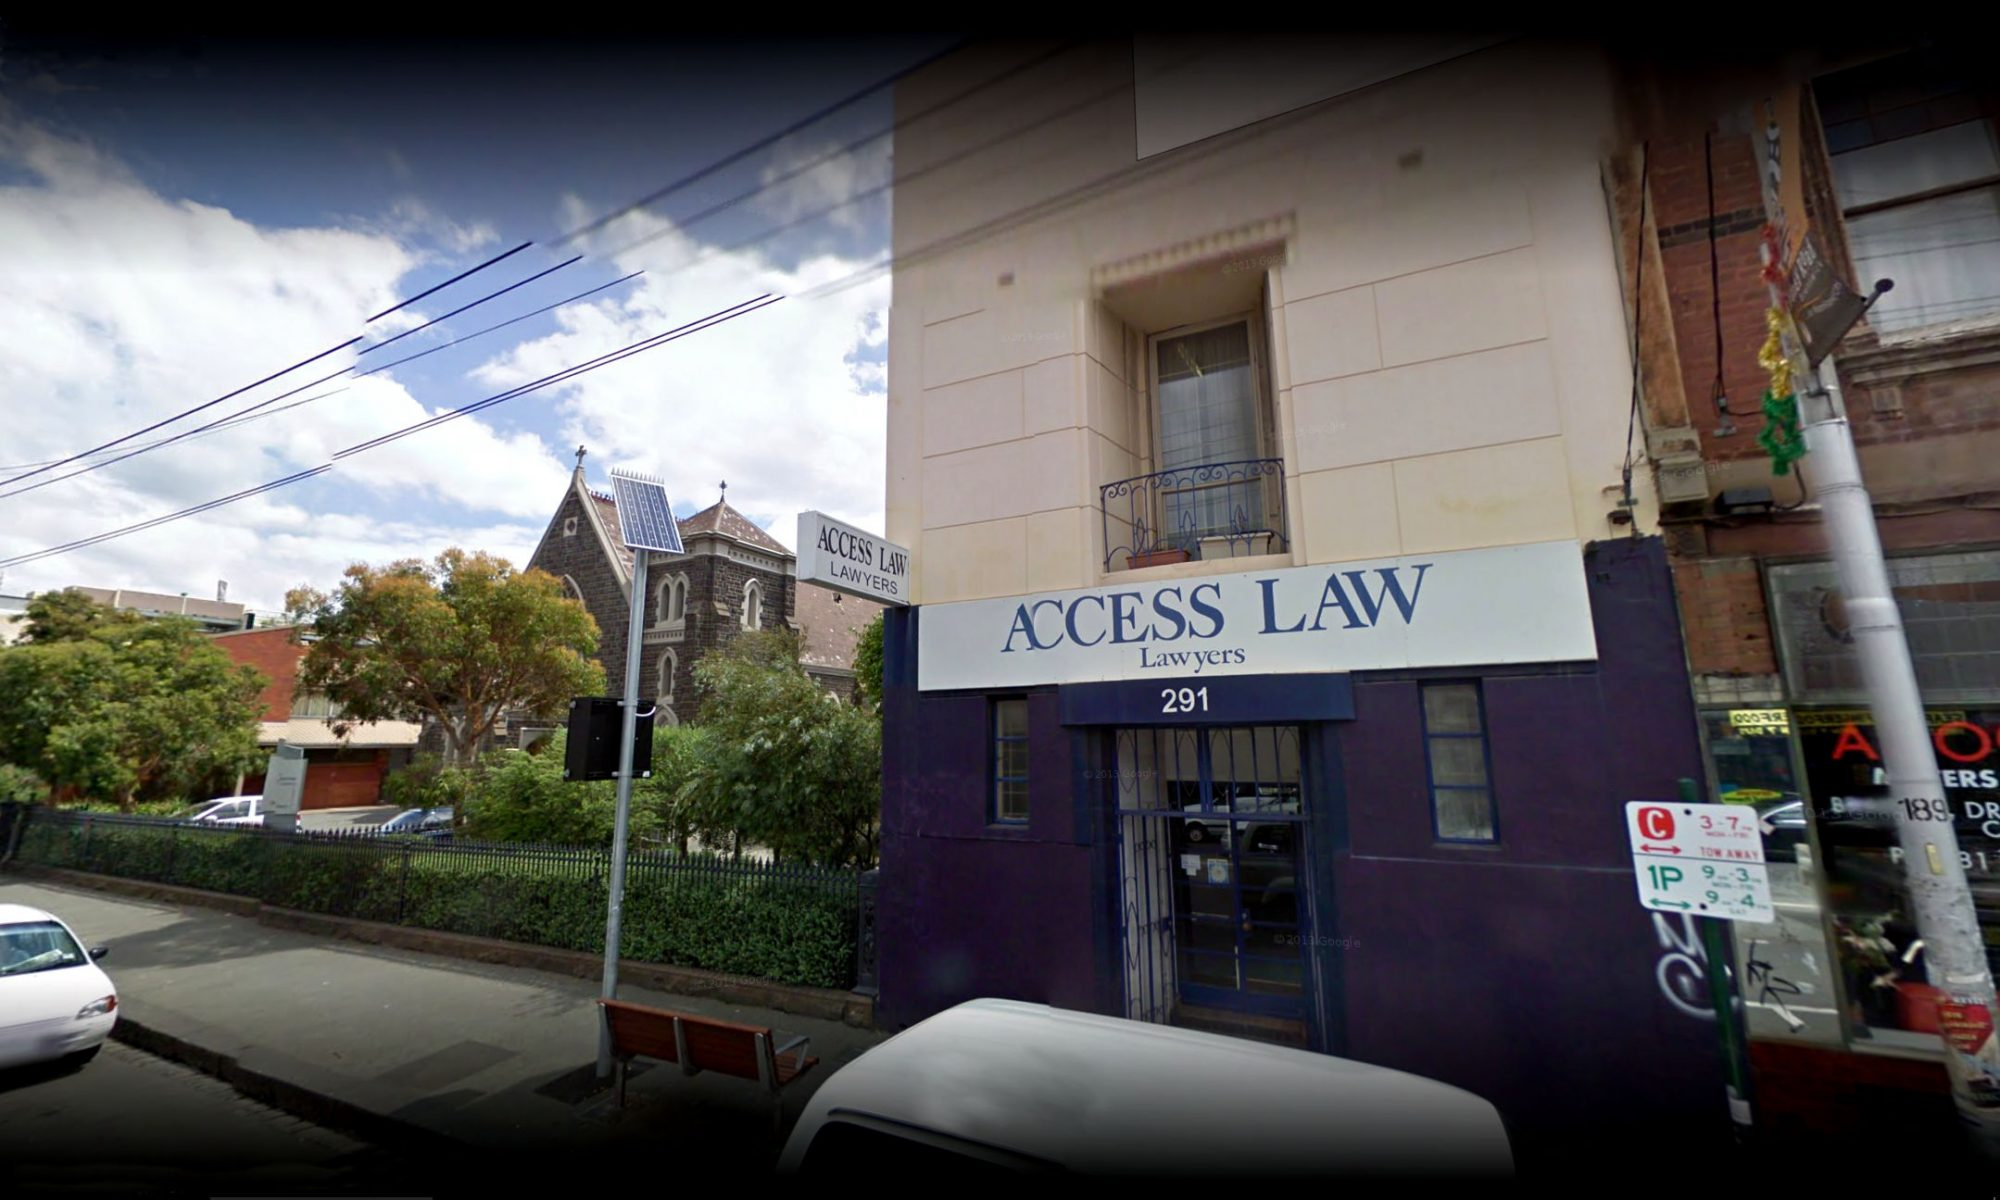 Access Law